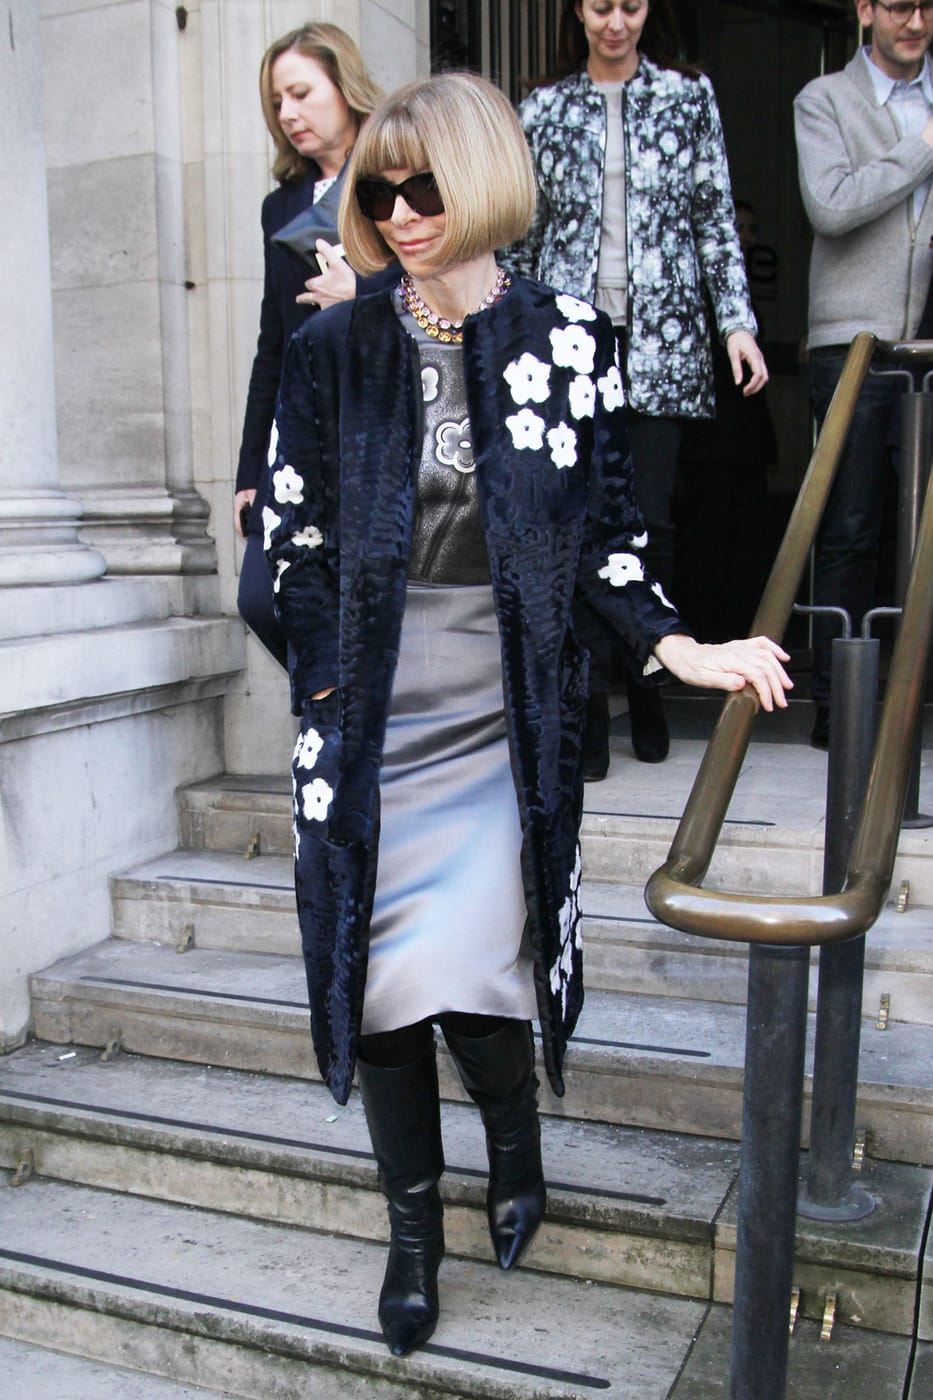 Anna Wintour wearing a gray satin pencil skirt, a gray floral top, a black and white floral fur coat, and a statement necklace with boots